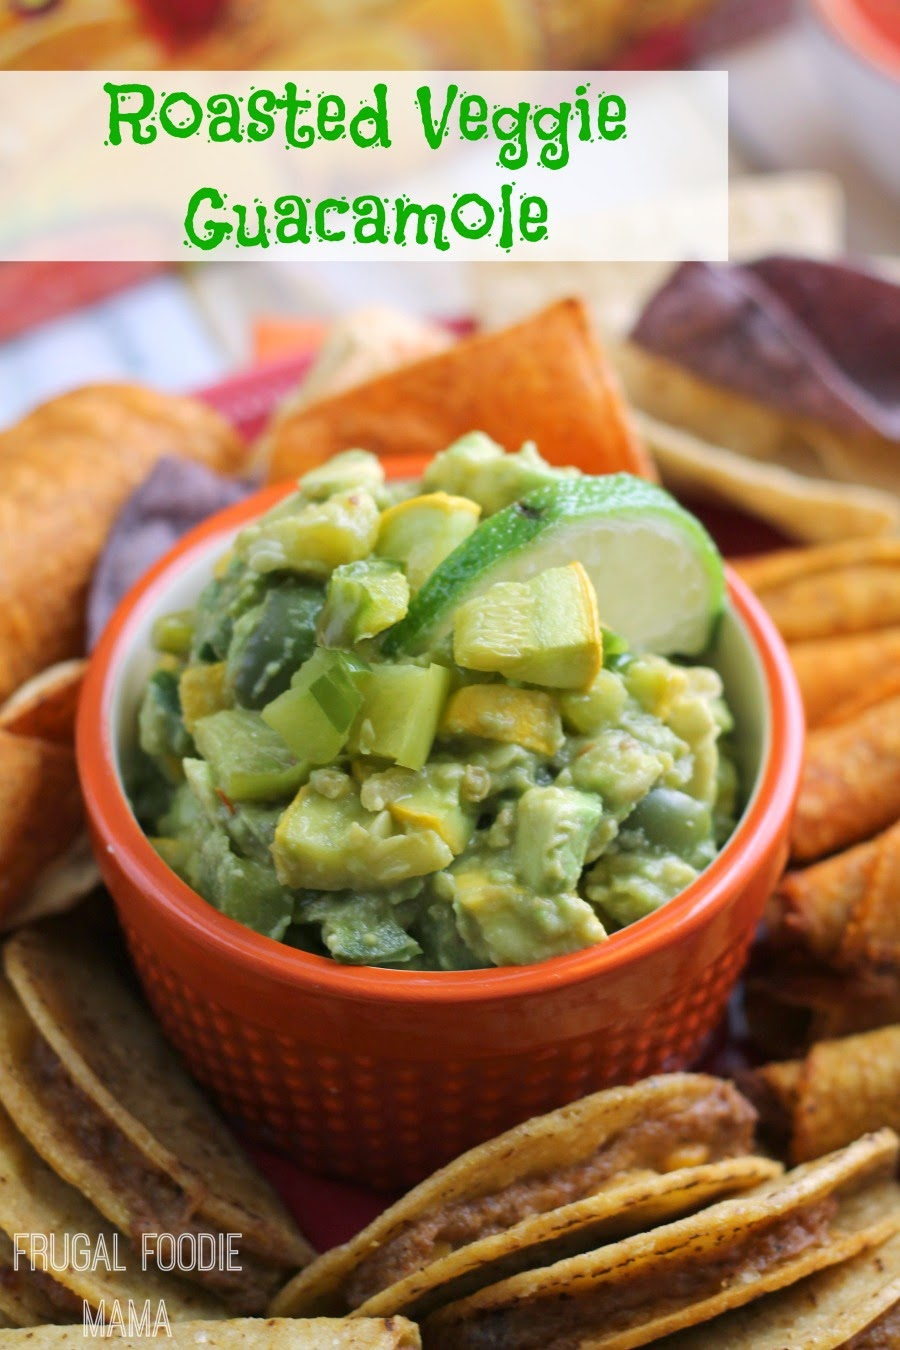 Packed with oven roasted veggies, this Roasted Veggie Guacamole is a fresh take on classic guacamole.